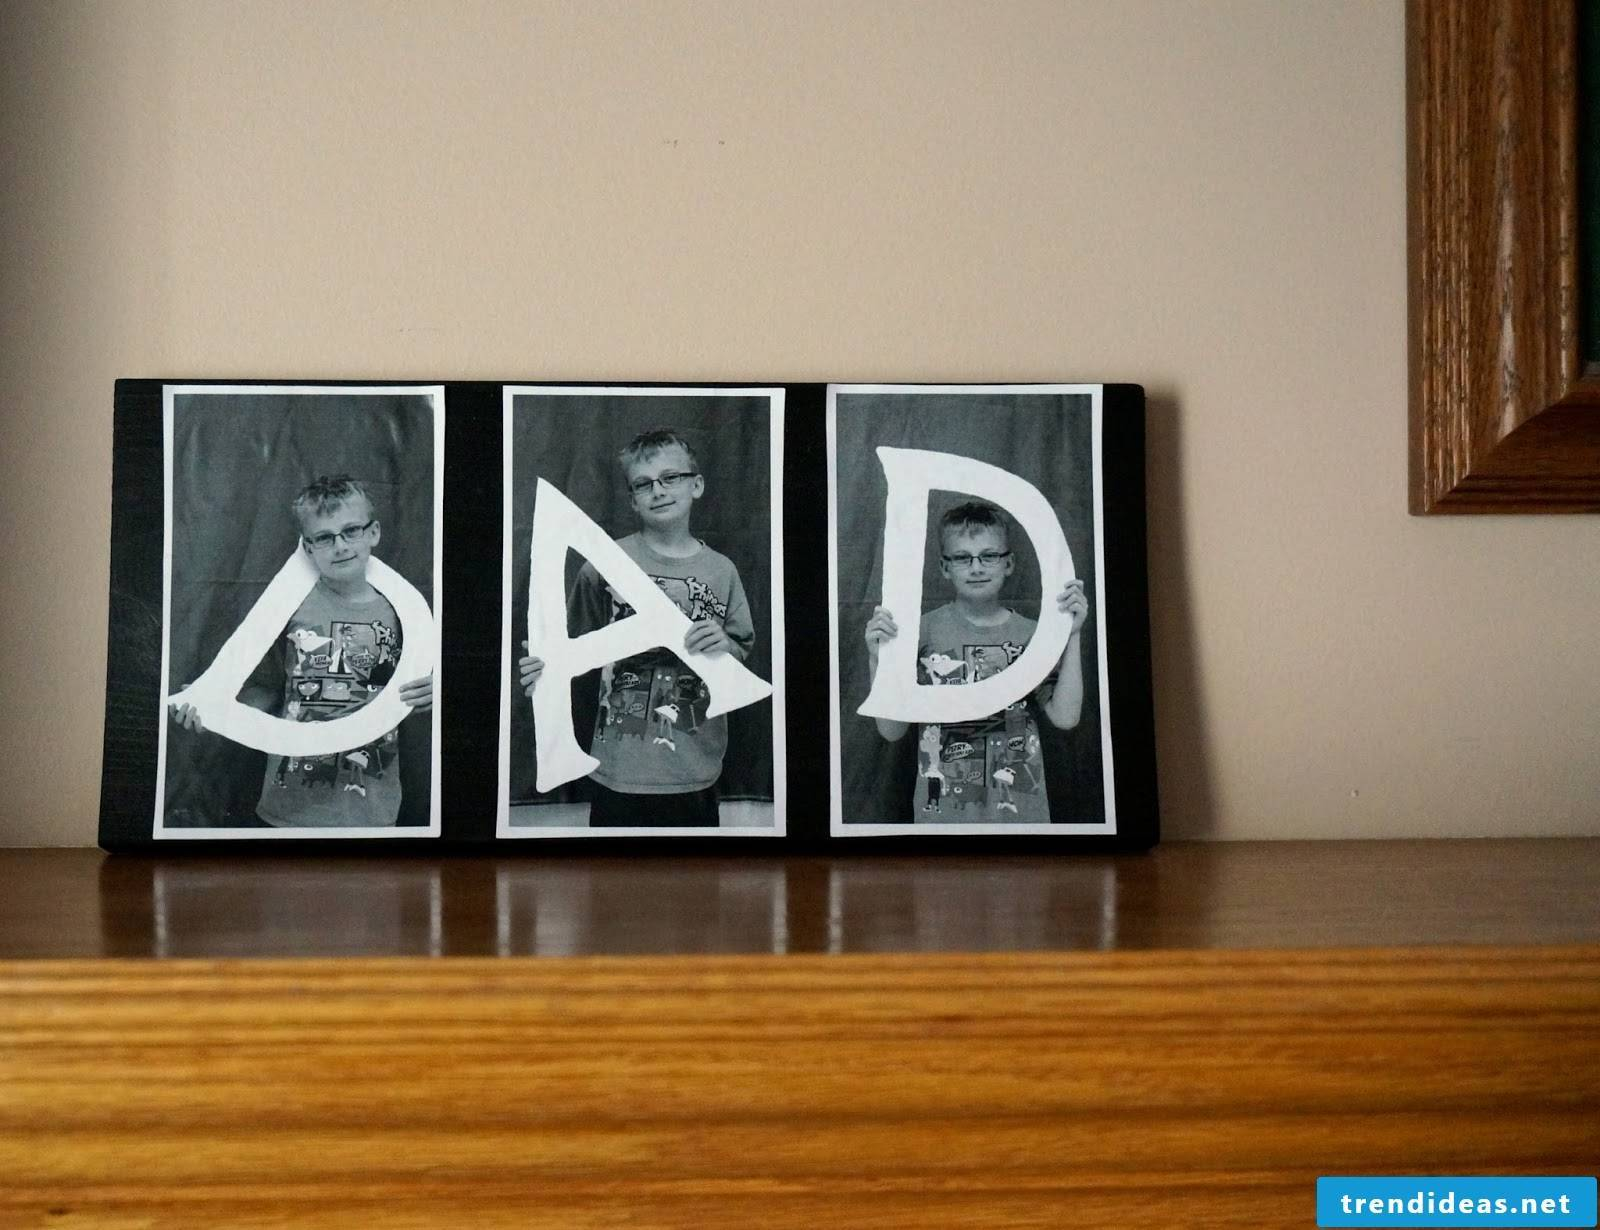 DIY photo on wood - the best gift idea for Father's Day 2018